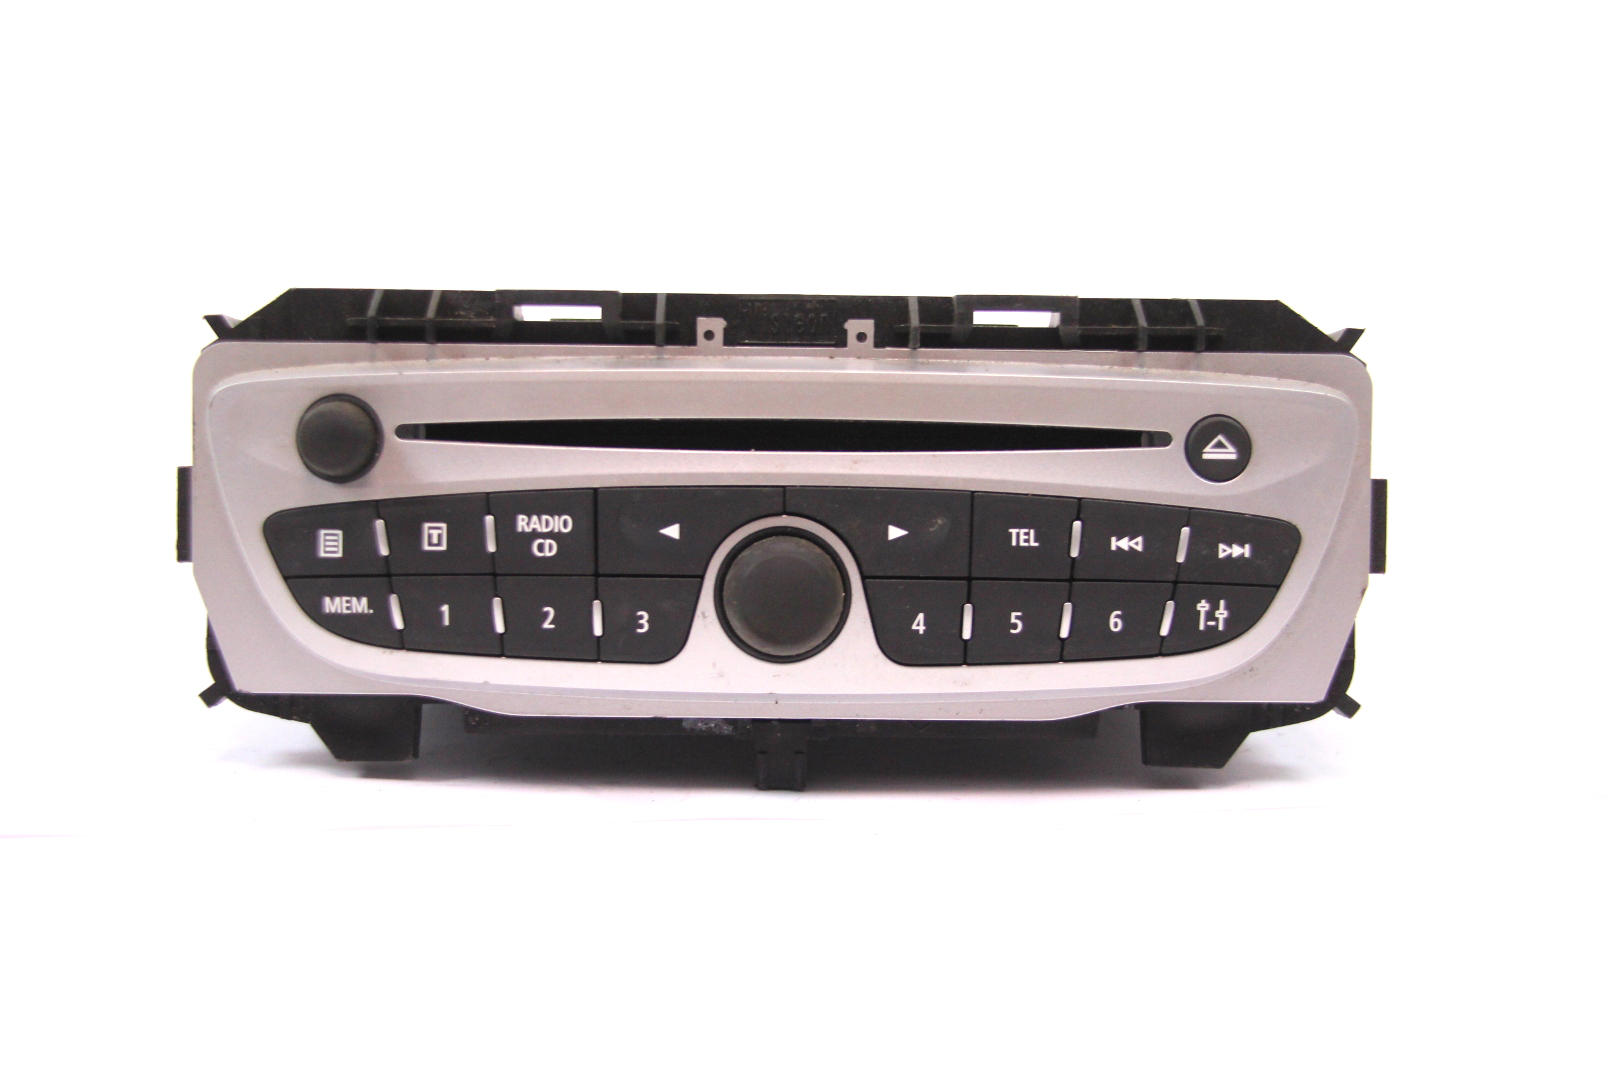 cd autoradio renault twingo 2 scenic megane 3 iii 281152391 mit code bosch radio ebay. Black Bedroom Furniture Sets. Home Design Ideas